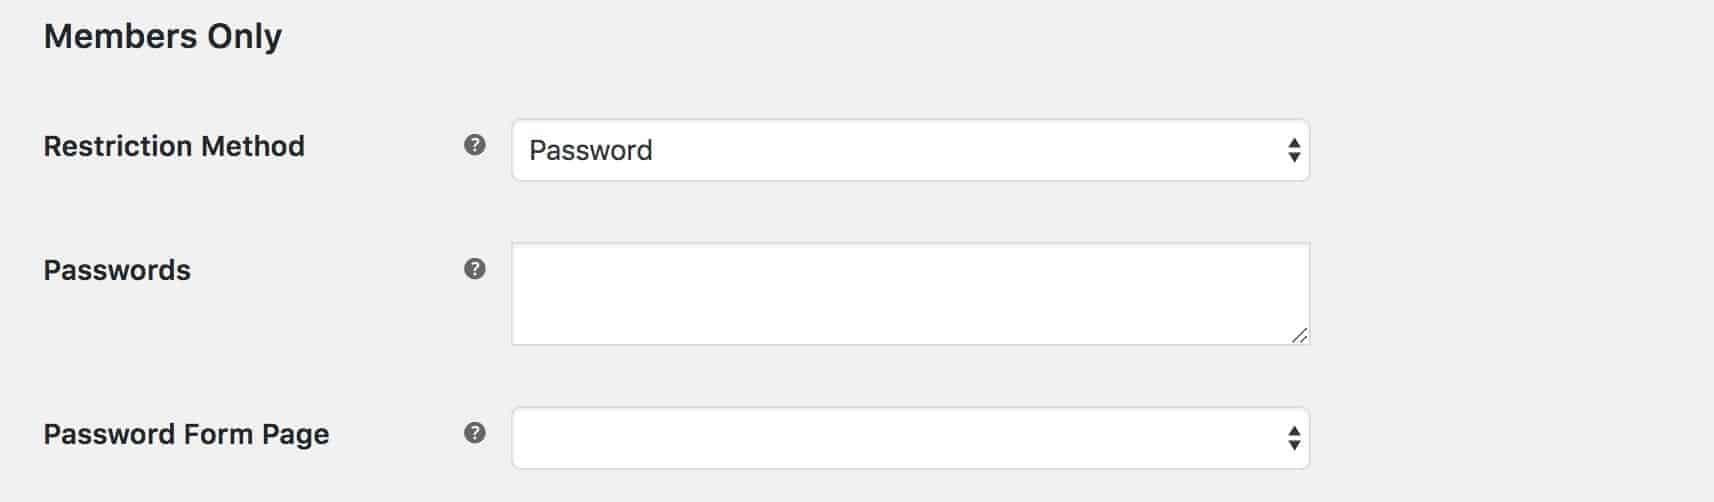 WooCommerce Members Only password settings